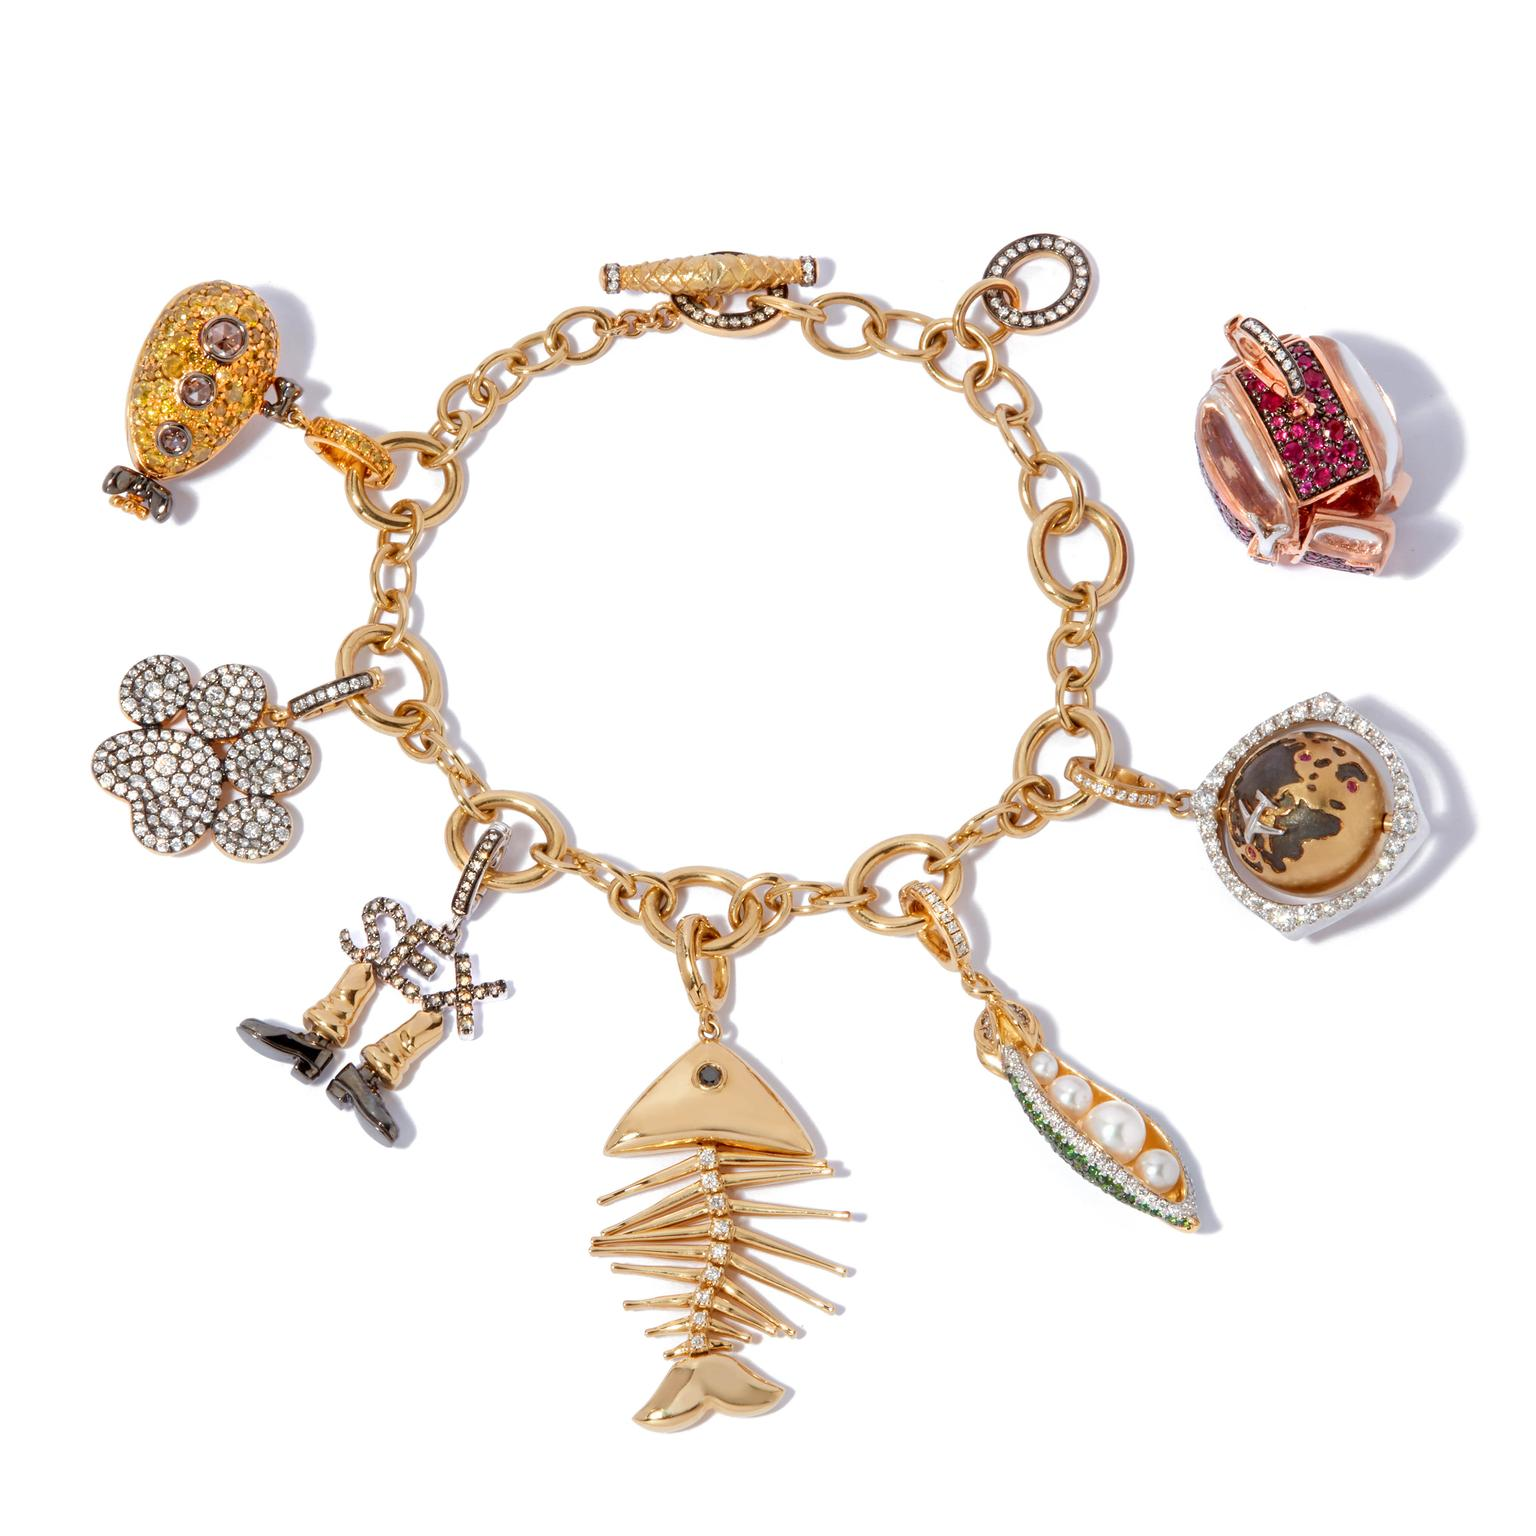 Annoushka My Life in 7 Charms, bracelet with charms